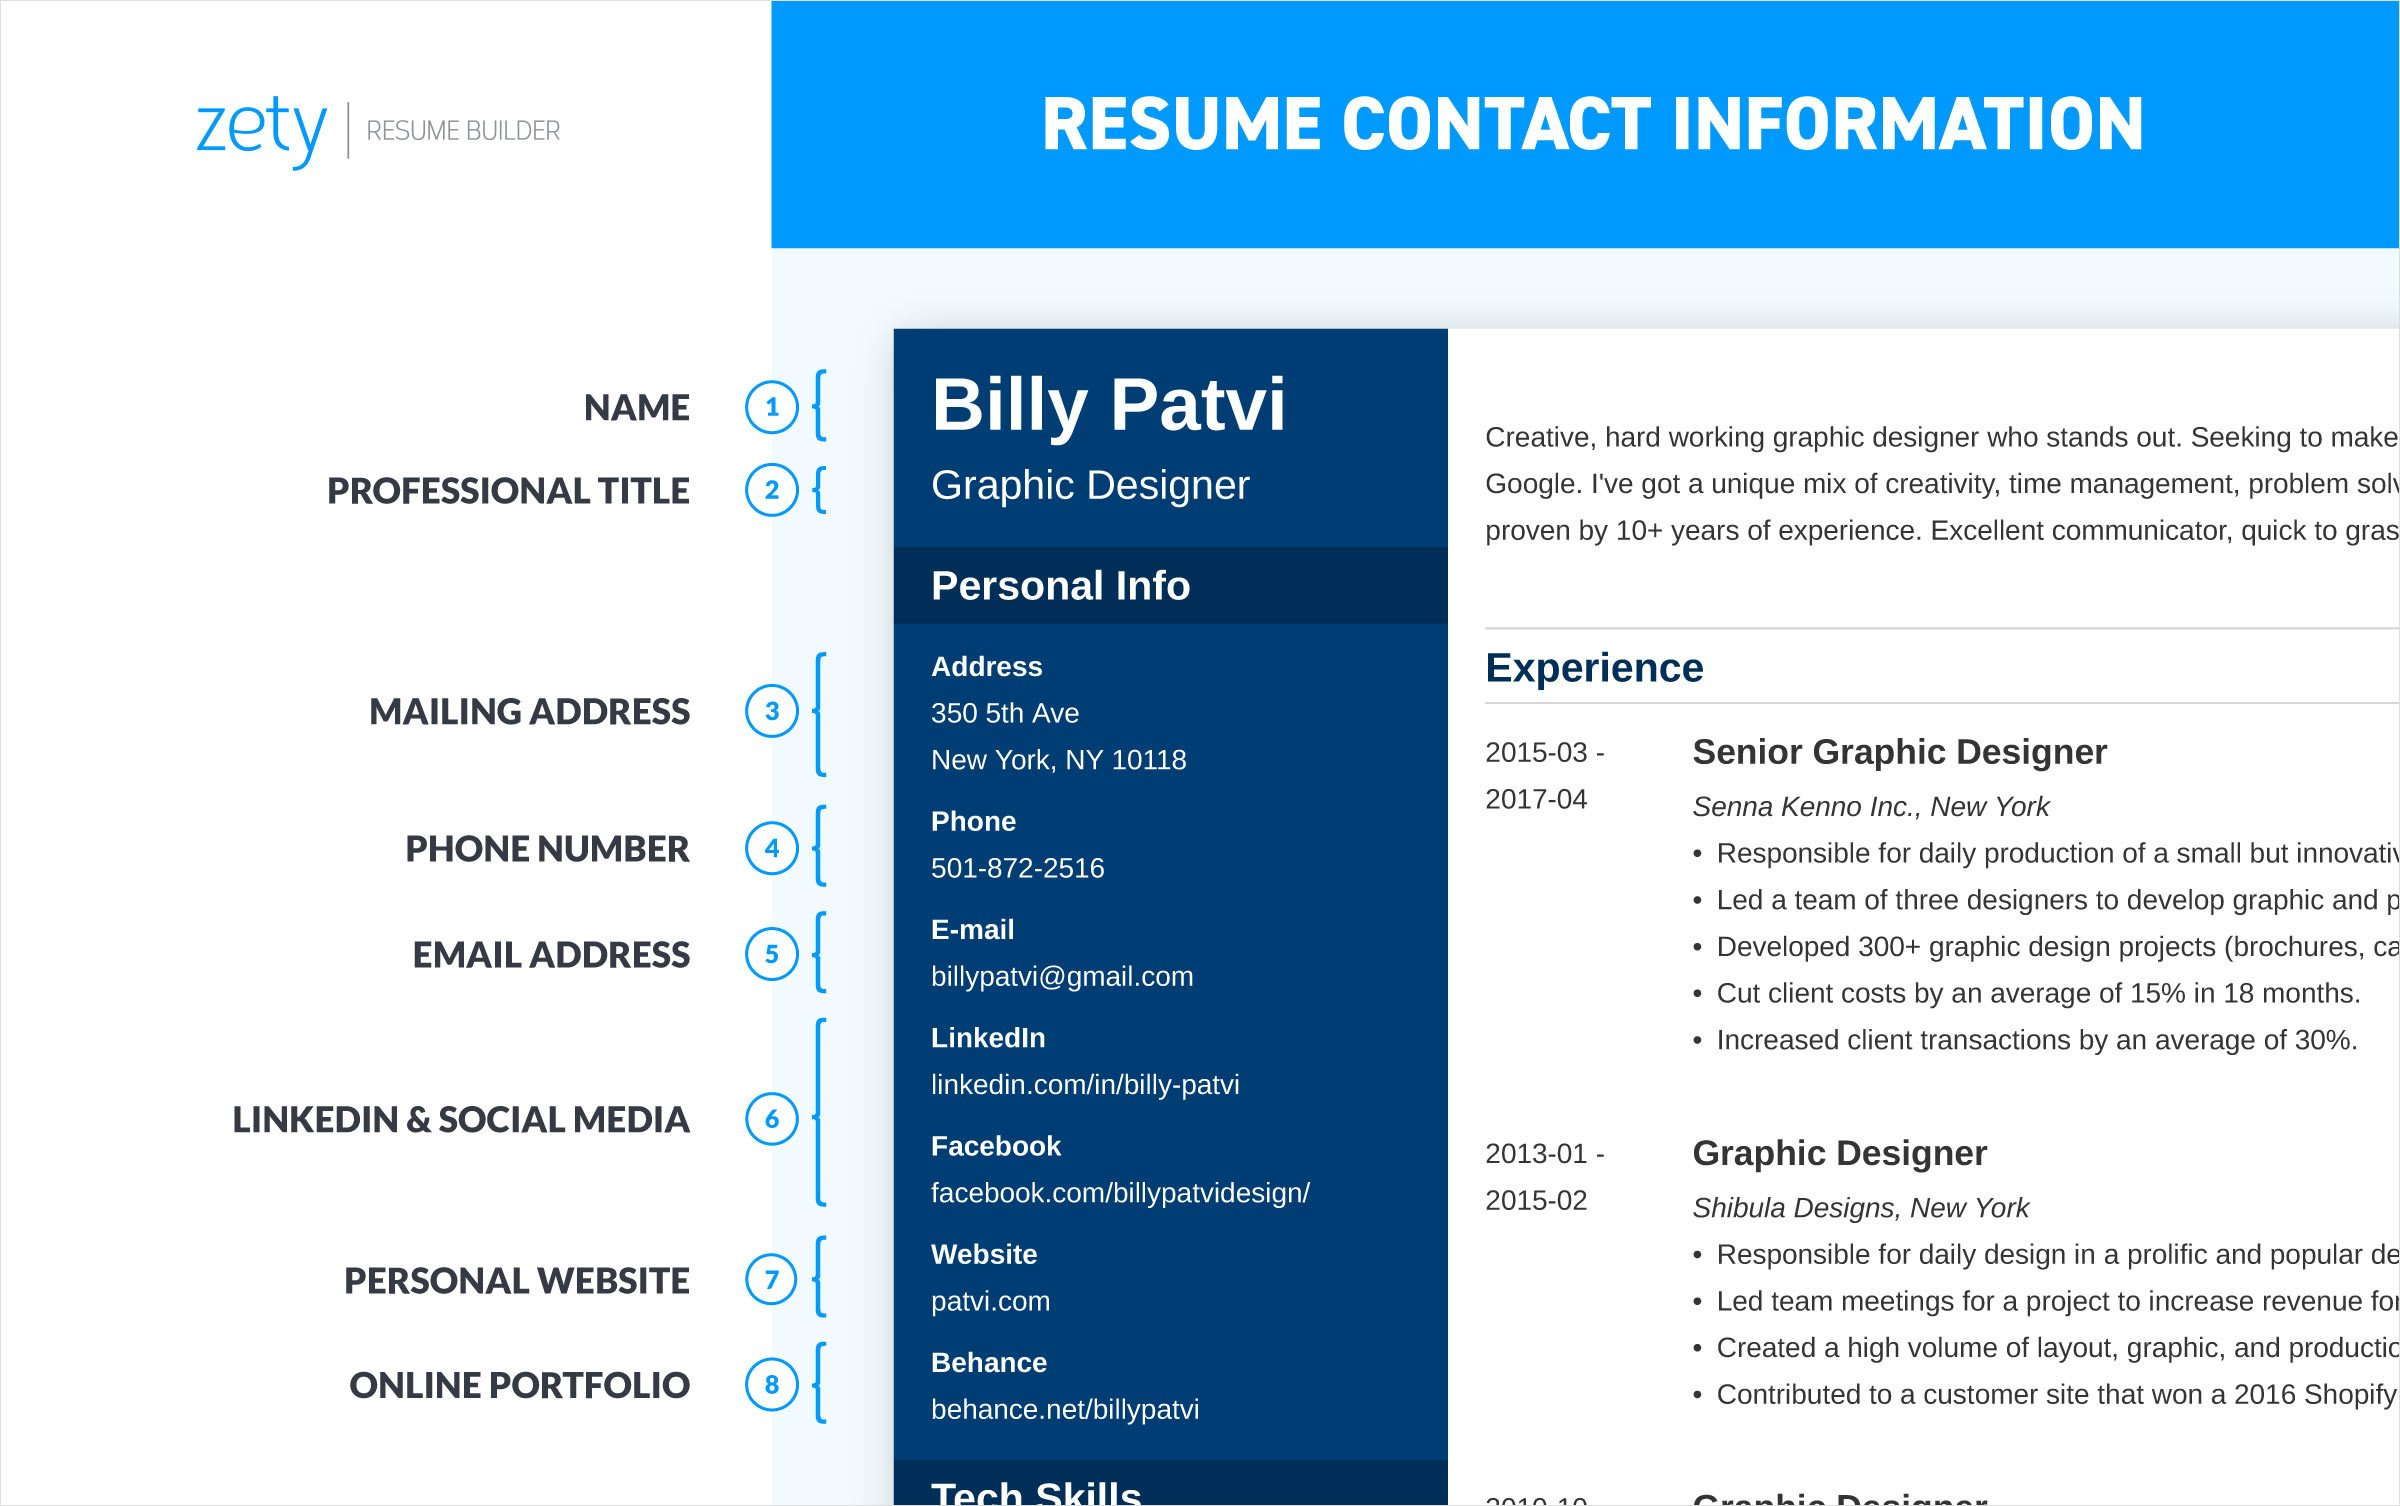 How To Write A Resume With The Right Contact Information